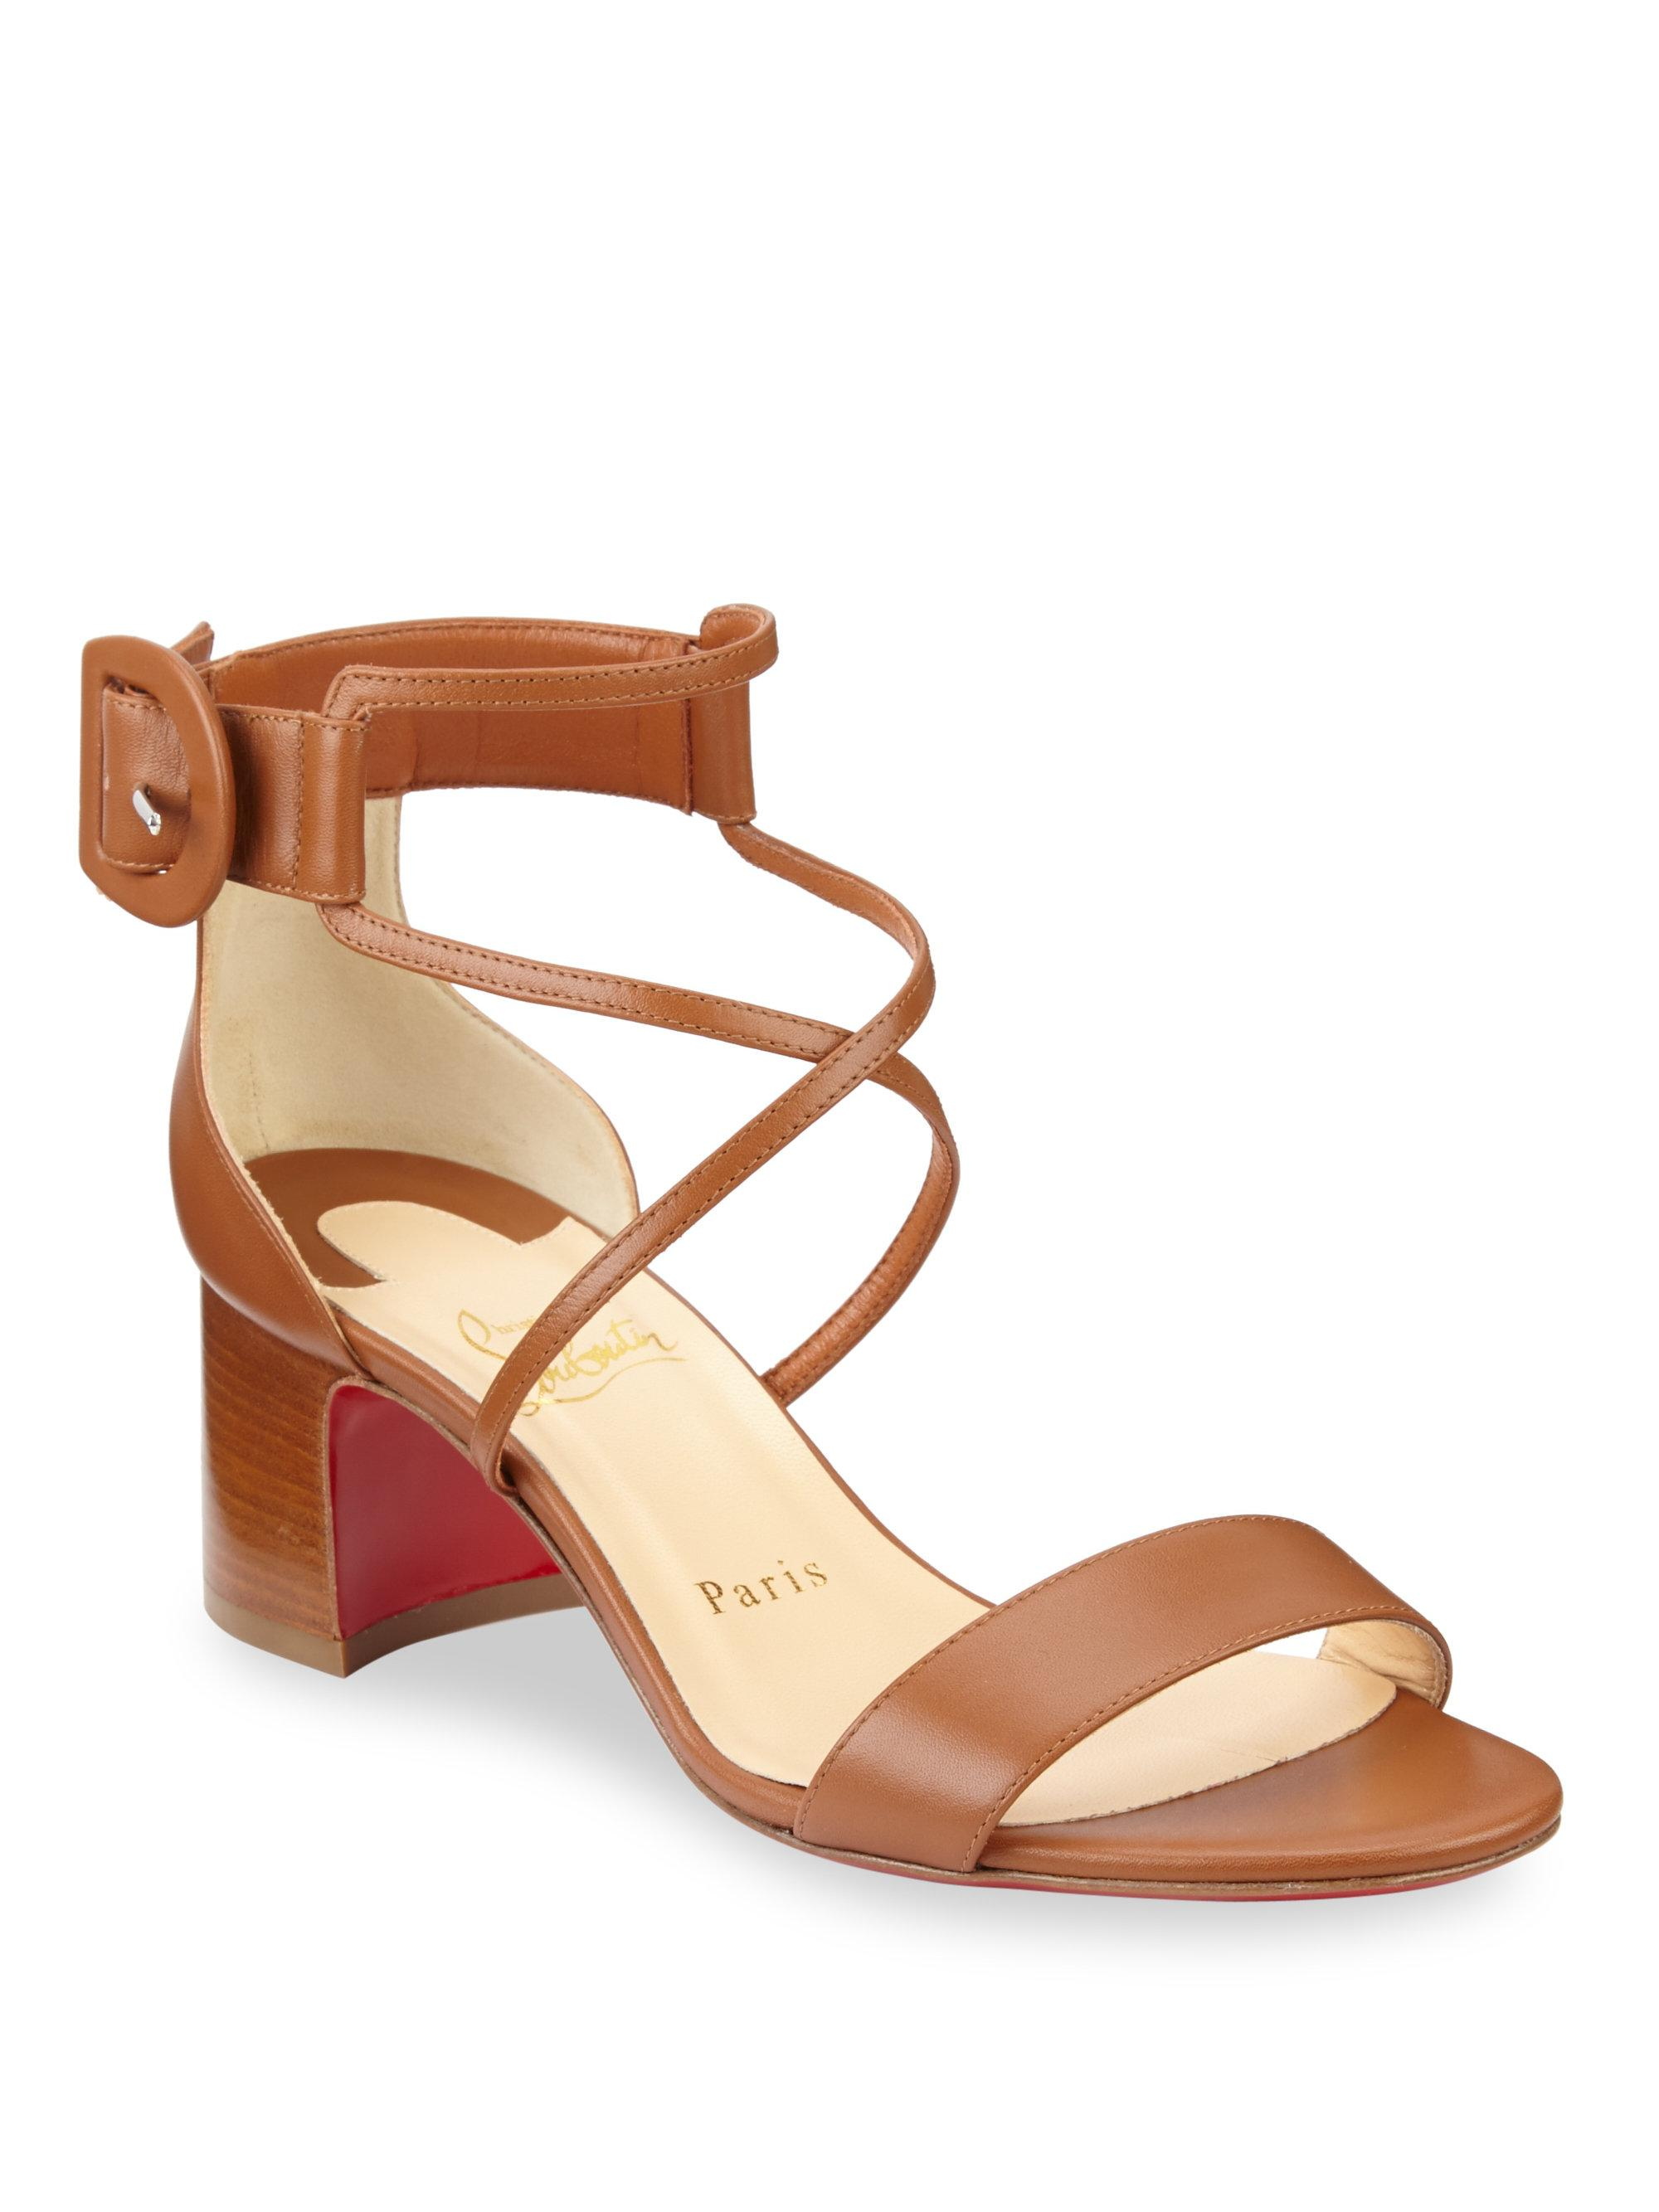 Womens Choca Patent Leather Sandals Christian Louboutin HwpHbso